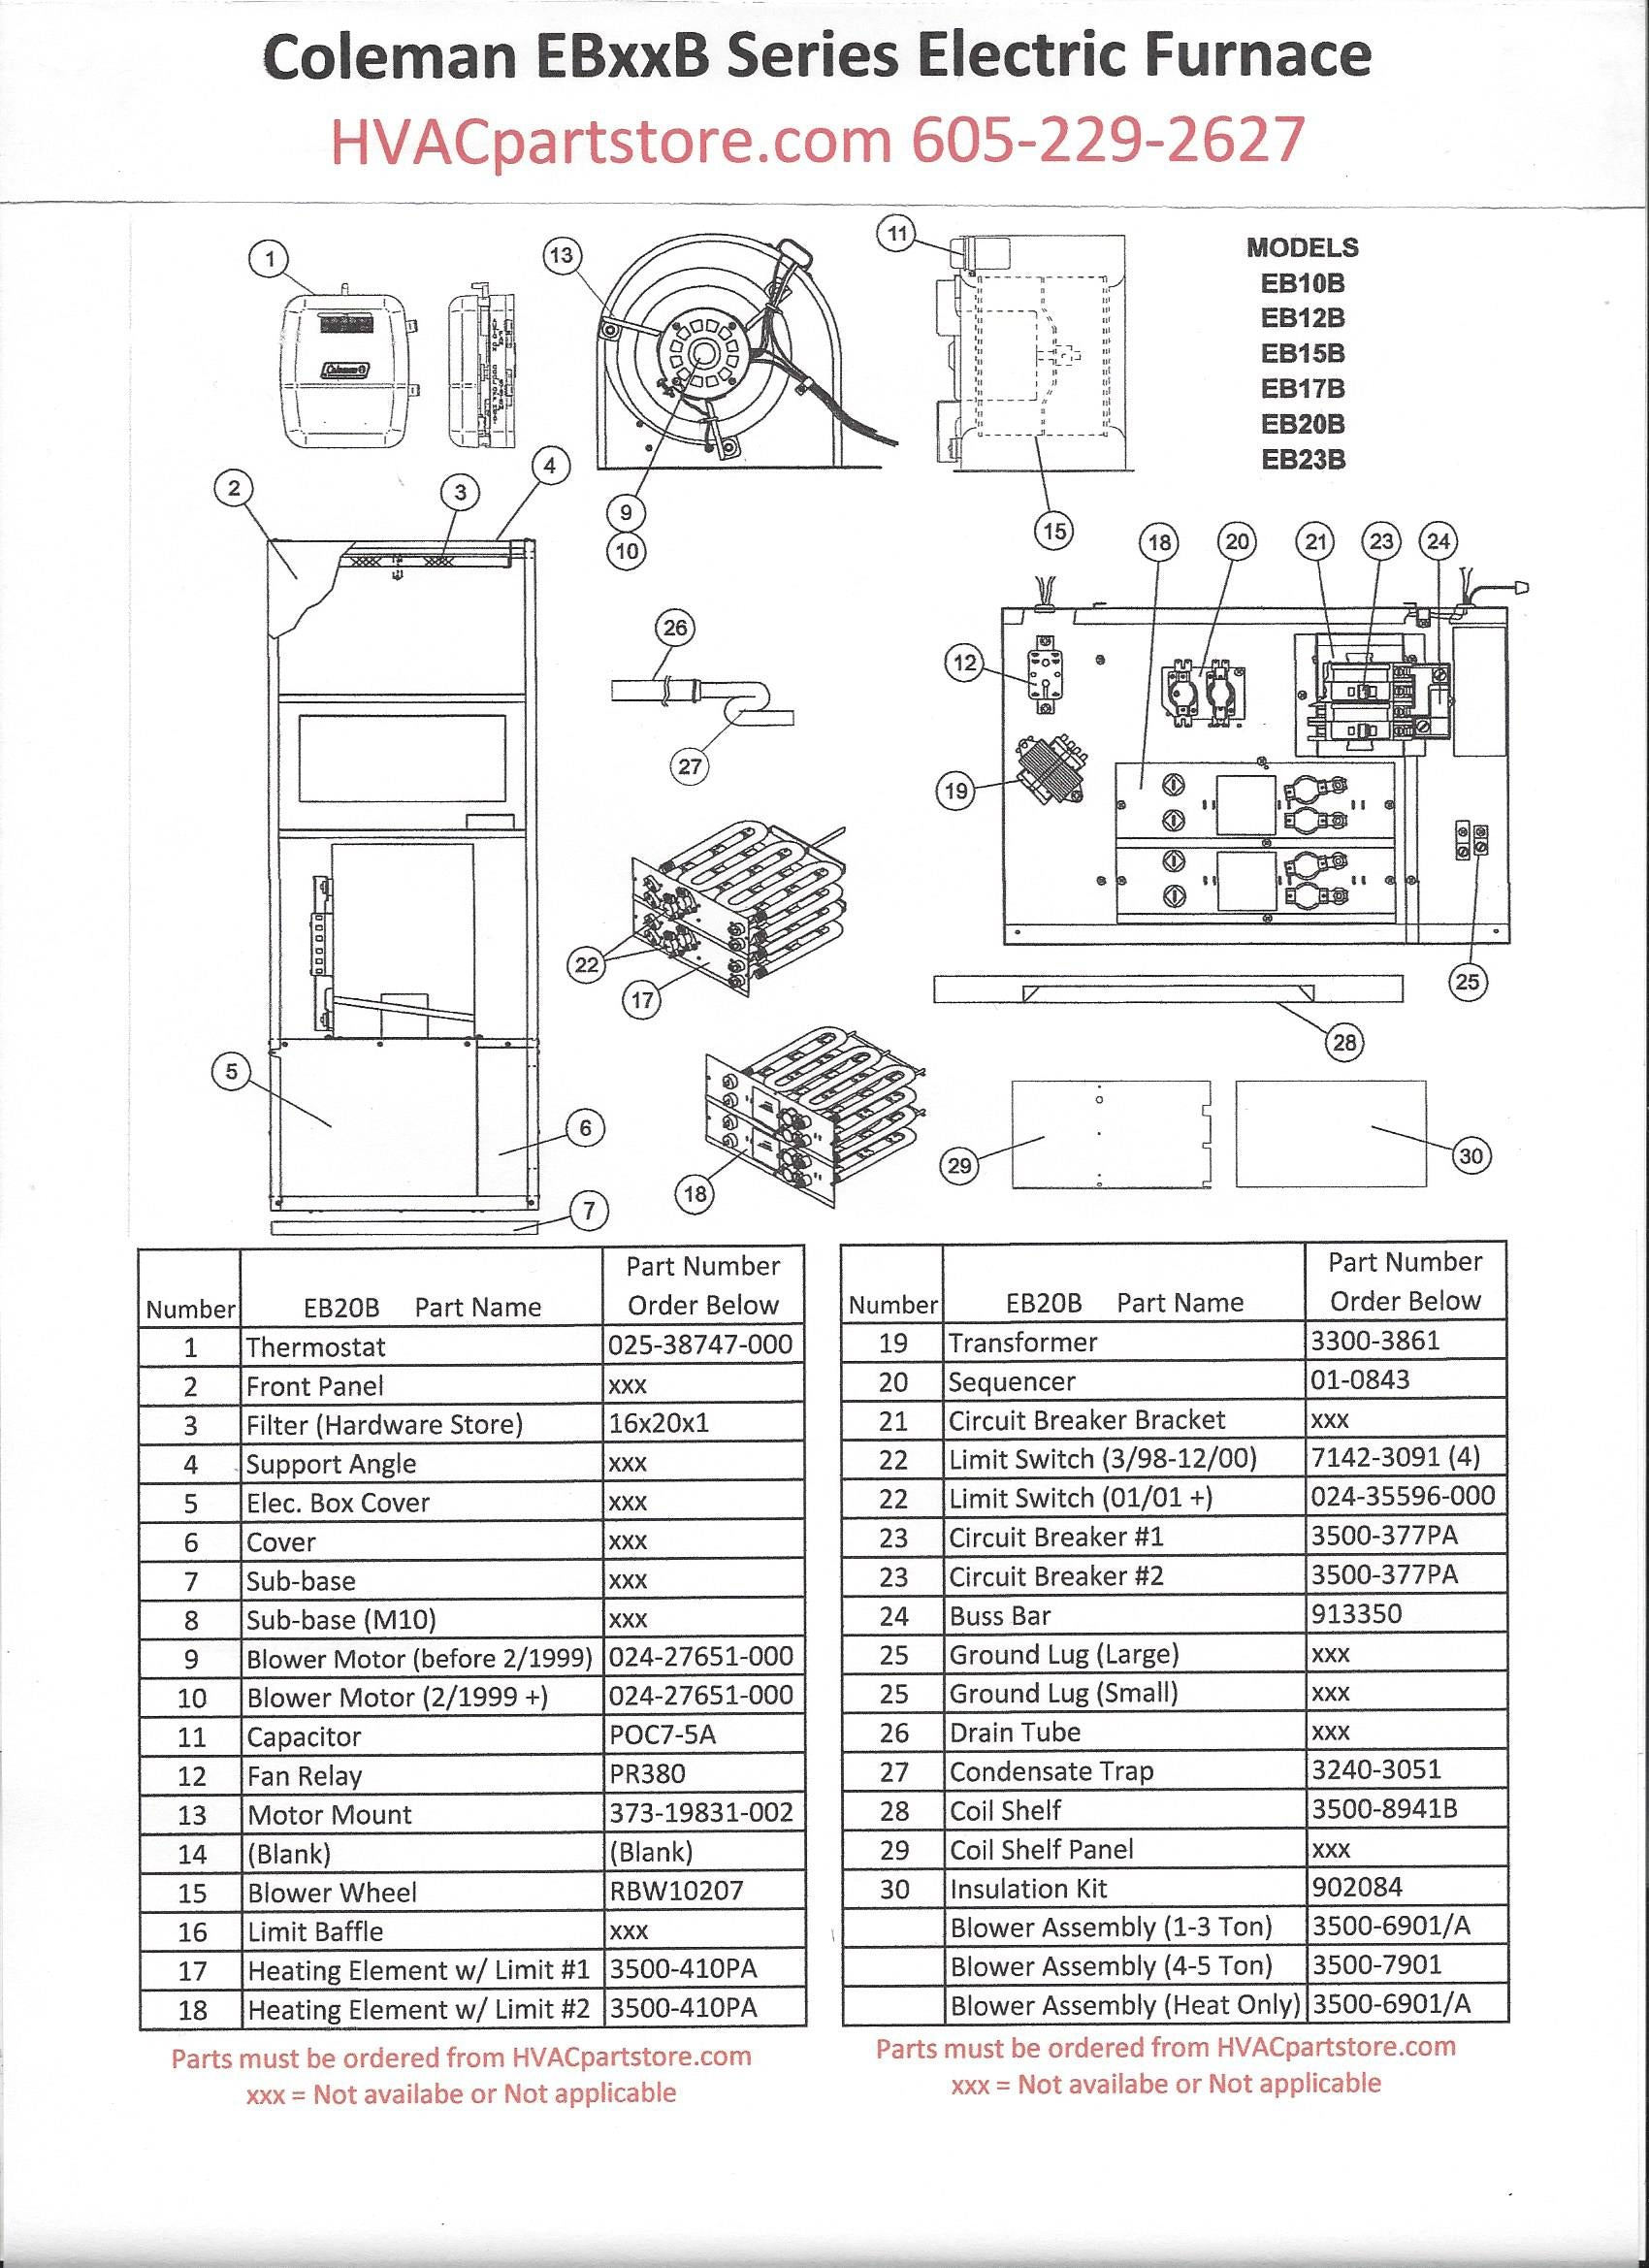 fireplace blower wiring diagram with Eb20b Coleman Electric Furnace Parts on Electric Fireplace Schematics as well Eb20b Coleman Electric Furnace Parts likewise Buck Stove Repairs together with Winston Wiring Diagrams in addition Dometic Rv Refrigerator Schematics.